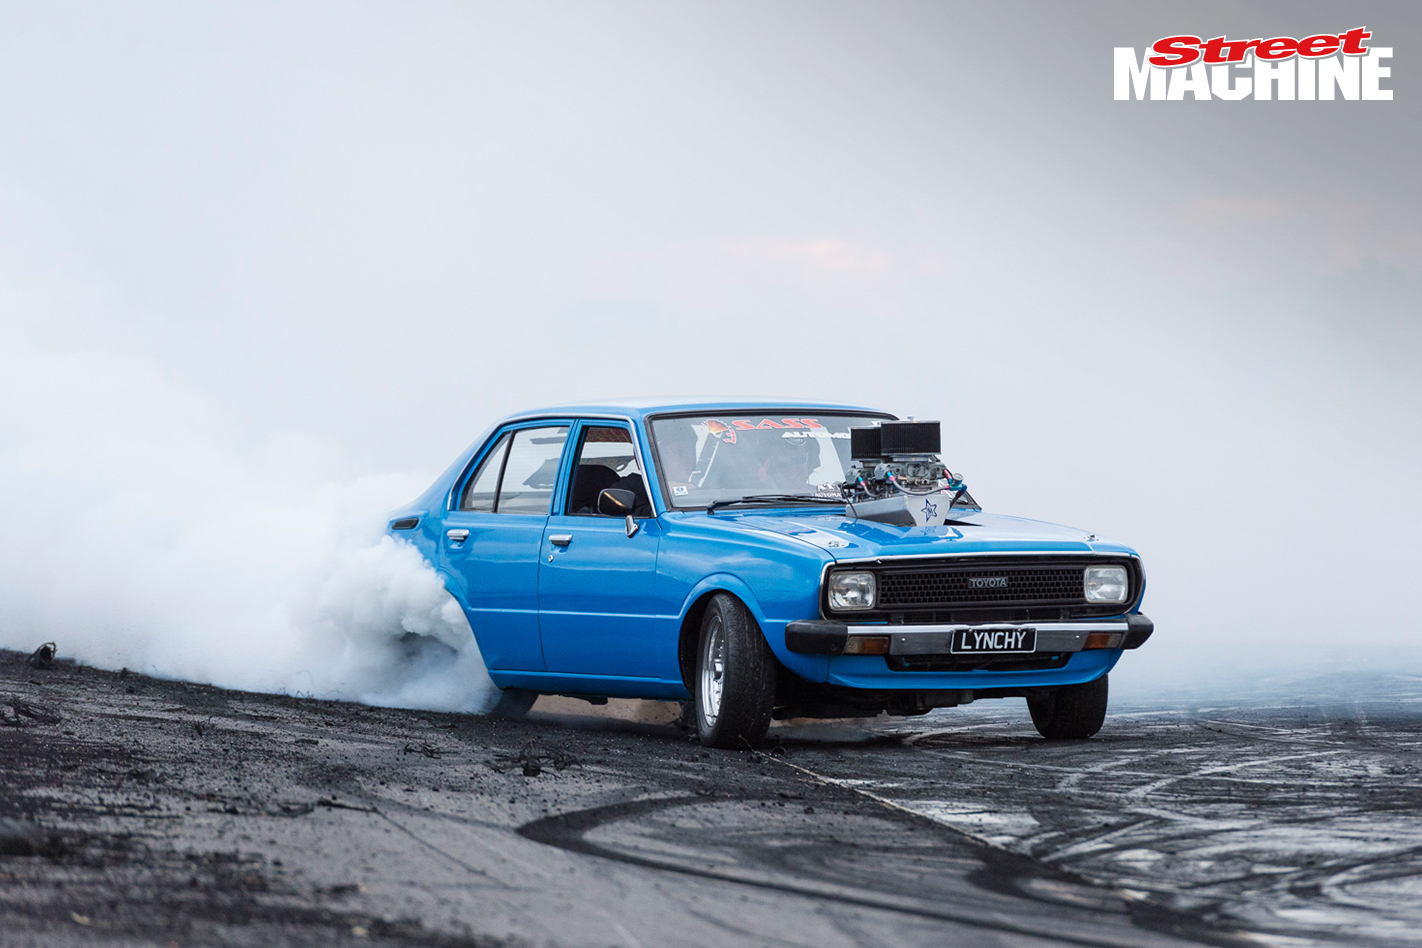 Lynchy V8 Corolla Burnout Steven Loader